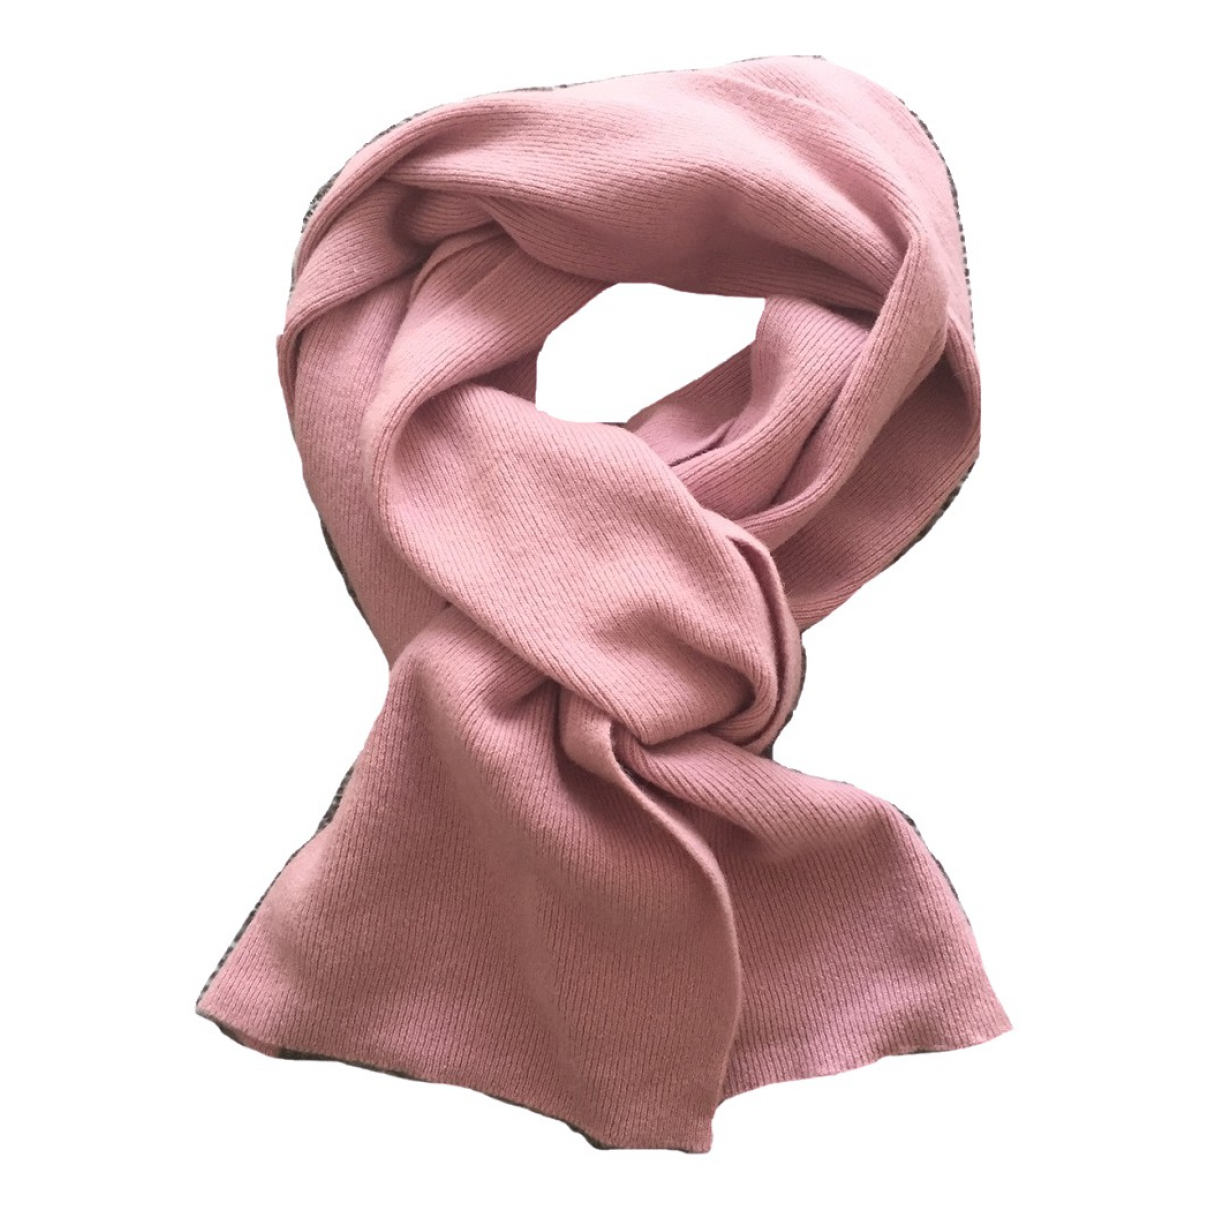 Benetton \N Schal in  Rosa Wolle